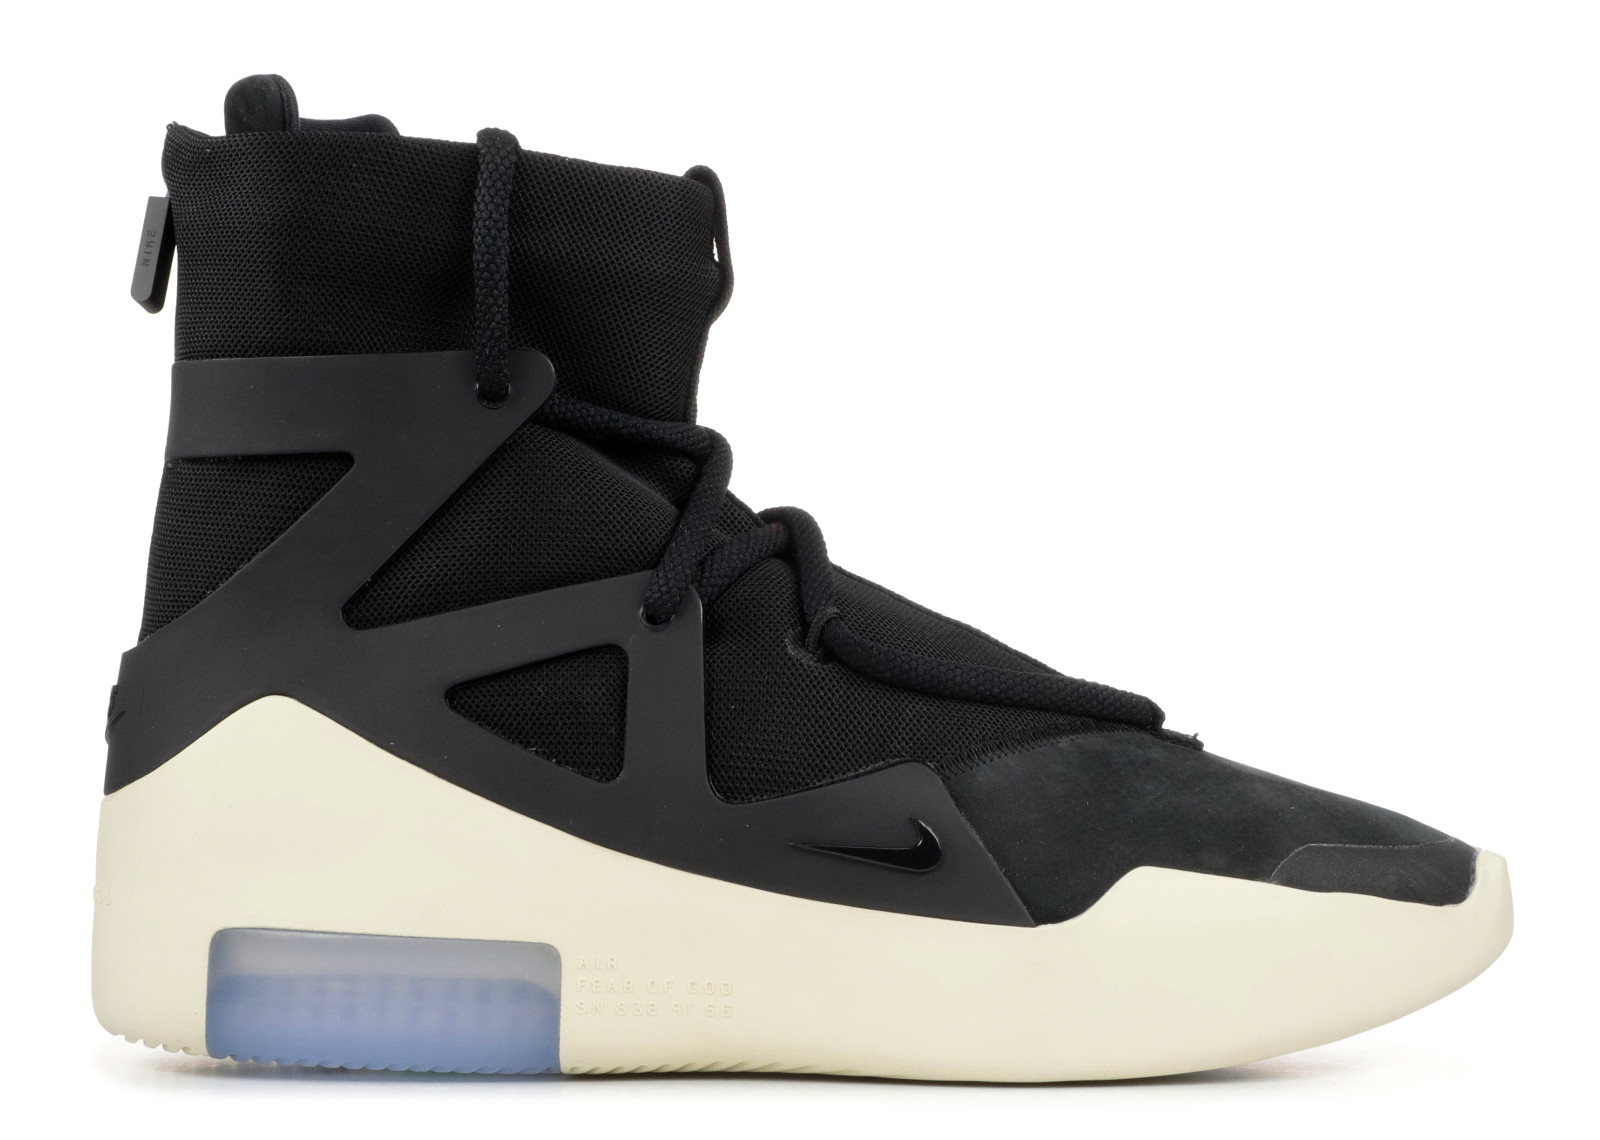 Nike Air Fear of God 1 Restock